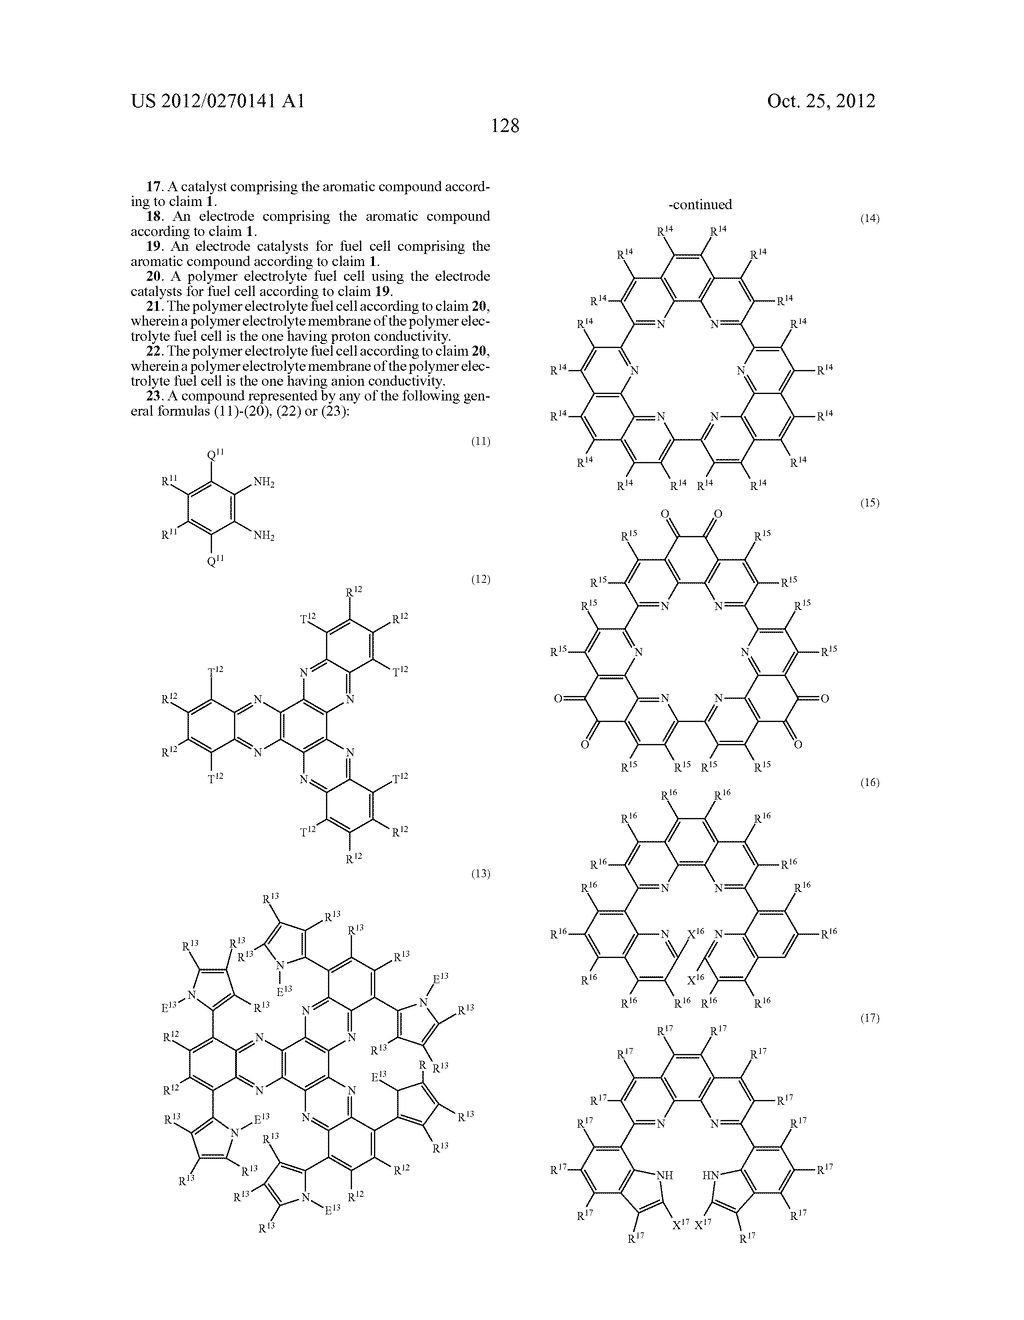 NITROGEN-CONTAINING AROMATIC COMPOUNDS AND METAL COMPLEXES - diagram, schematic, and image 129